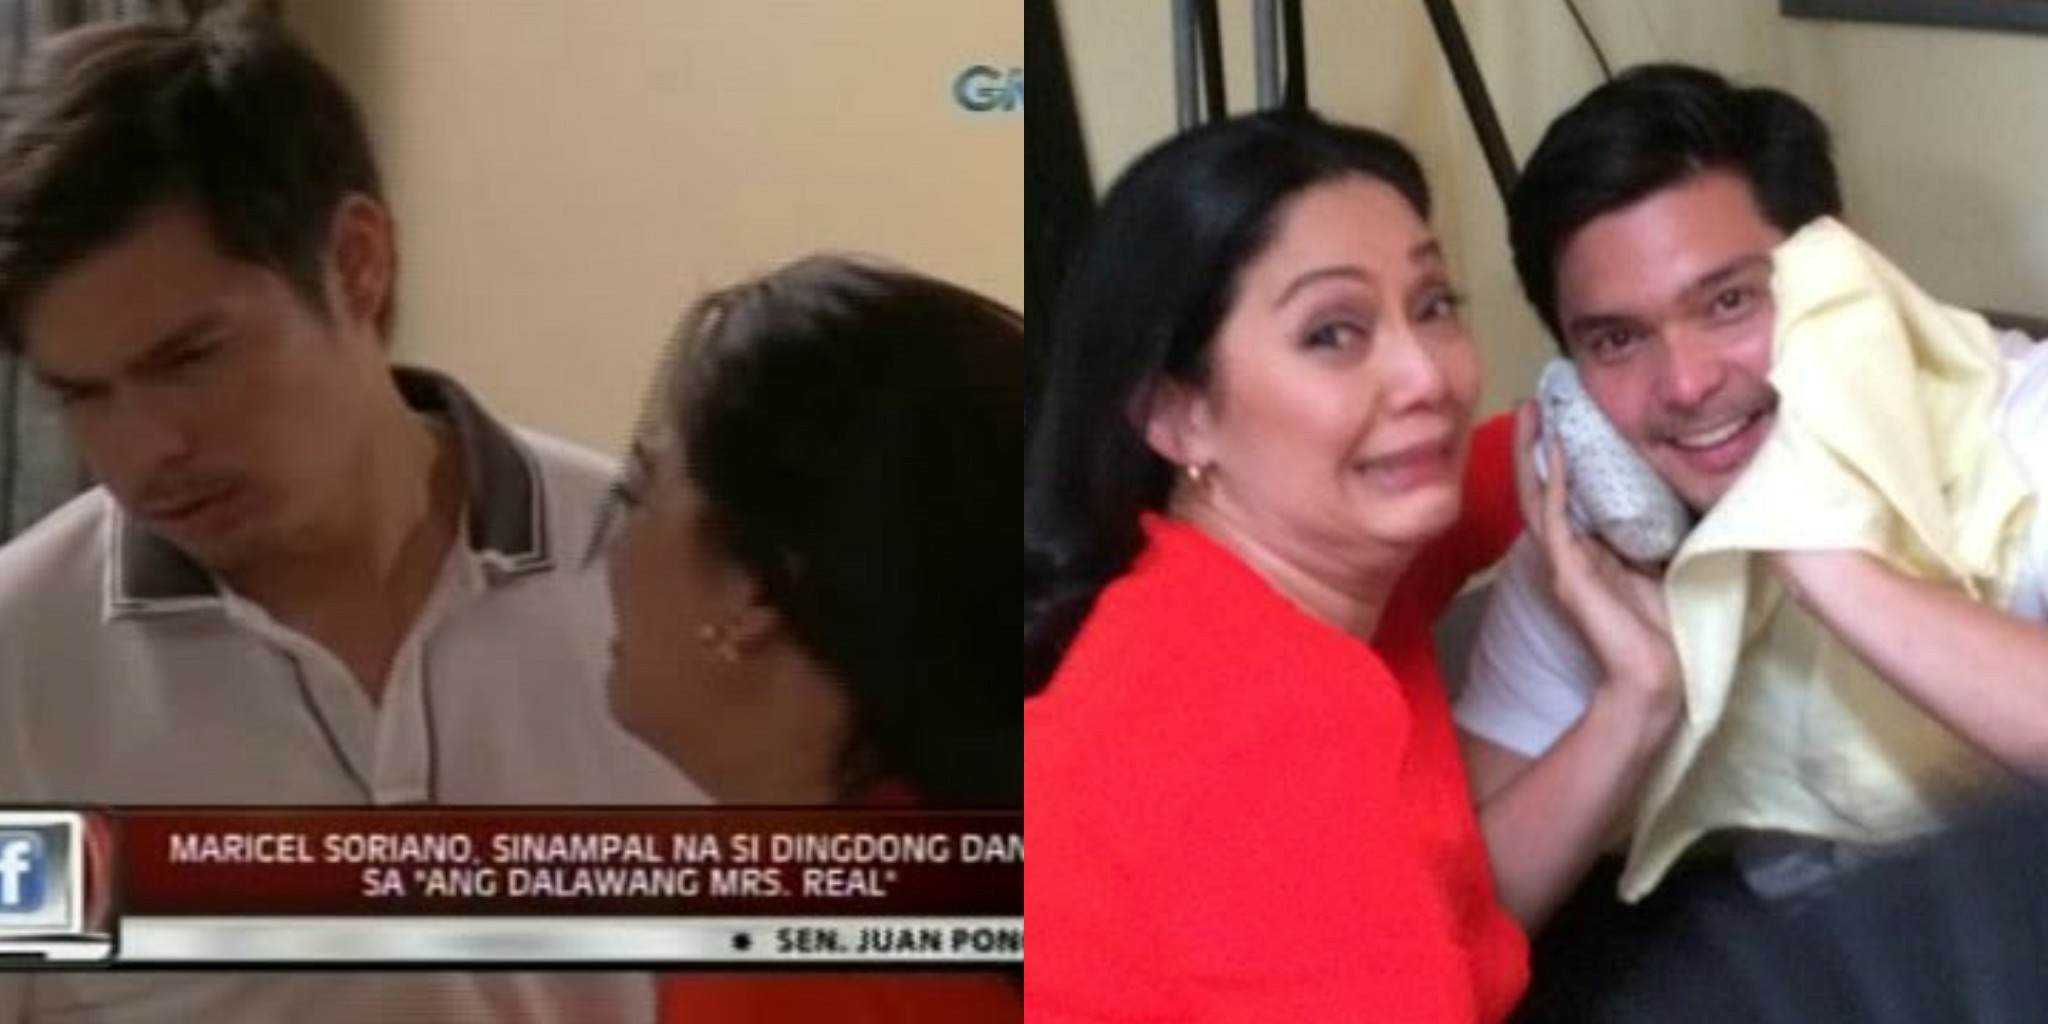 Maricel slap with Dingdong is on Top 10 - Team Dantes